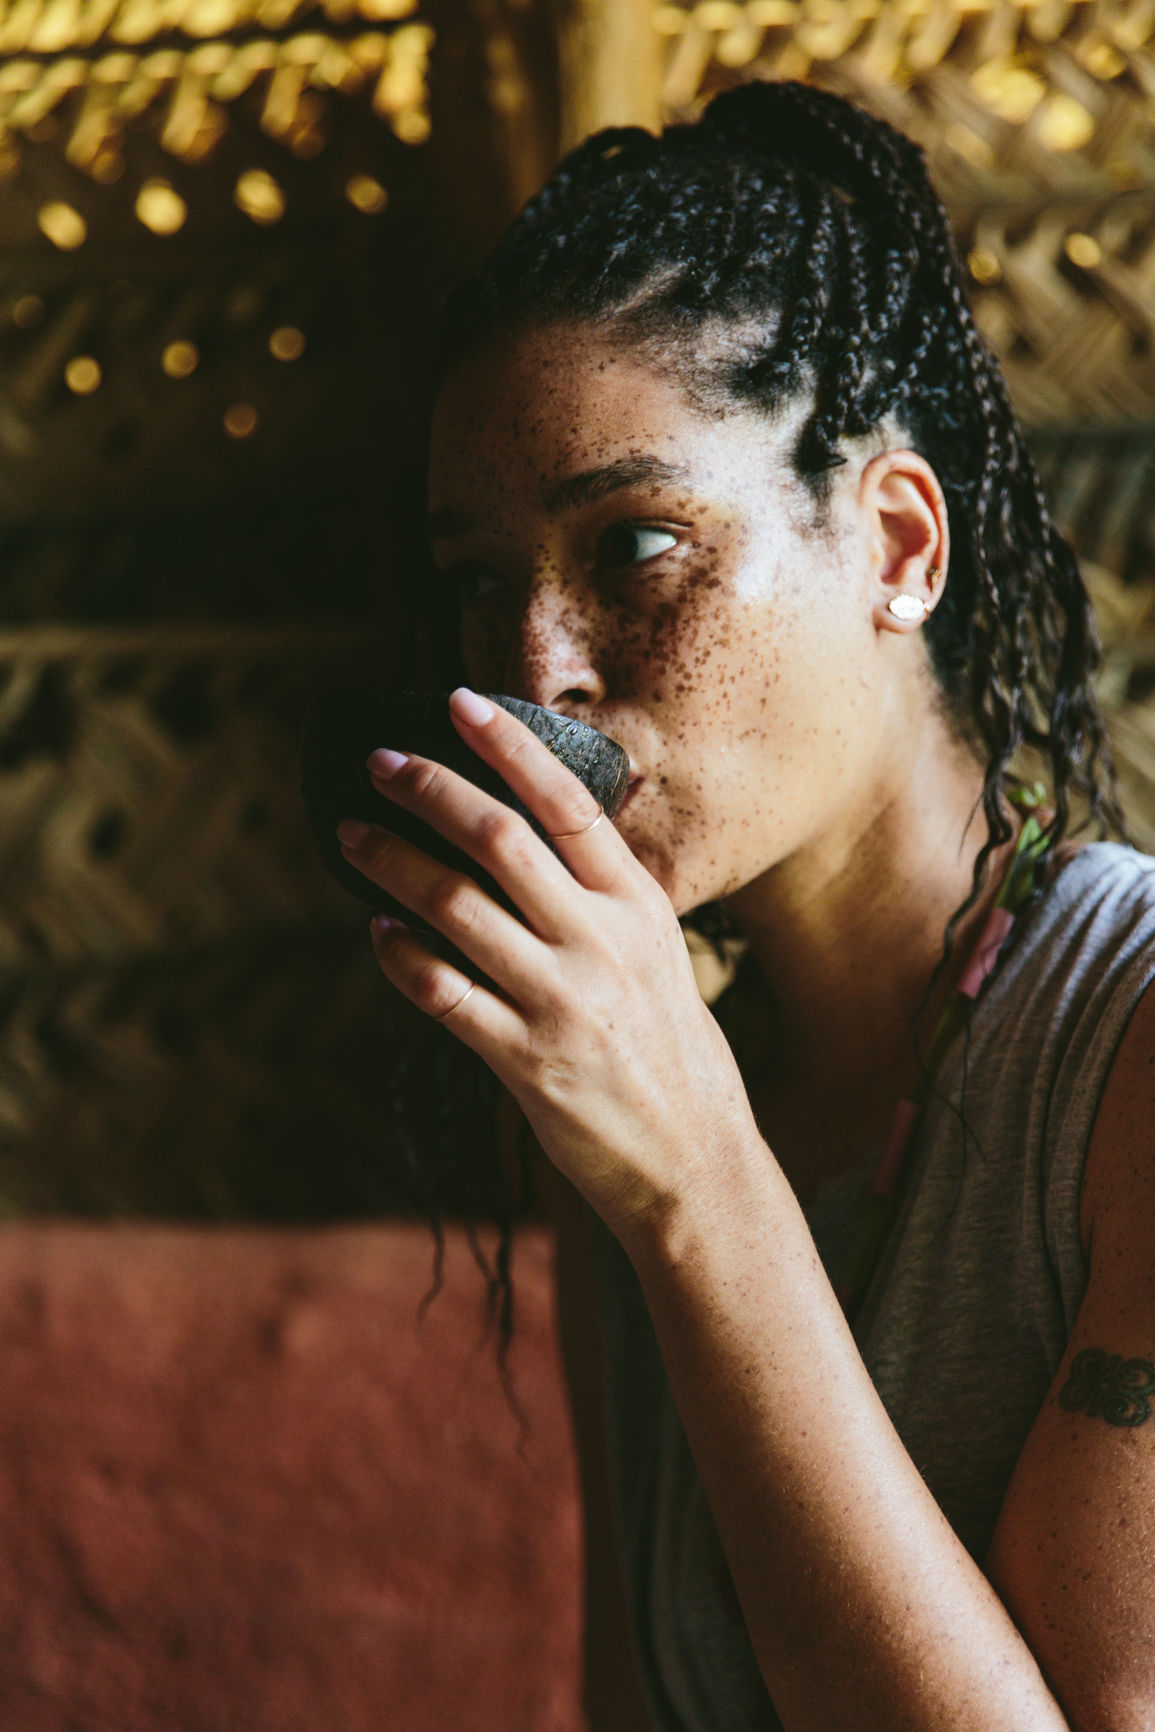 Everything You Need to Avoid Before You Take Ayahuasca - VICE